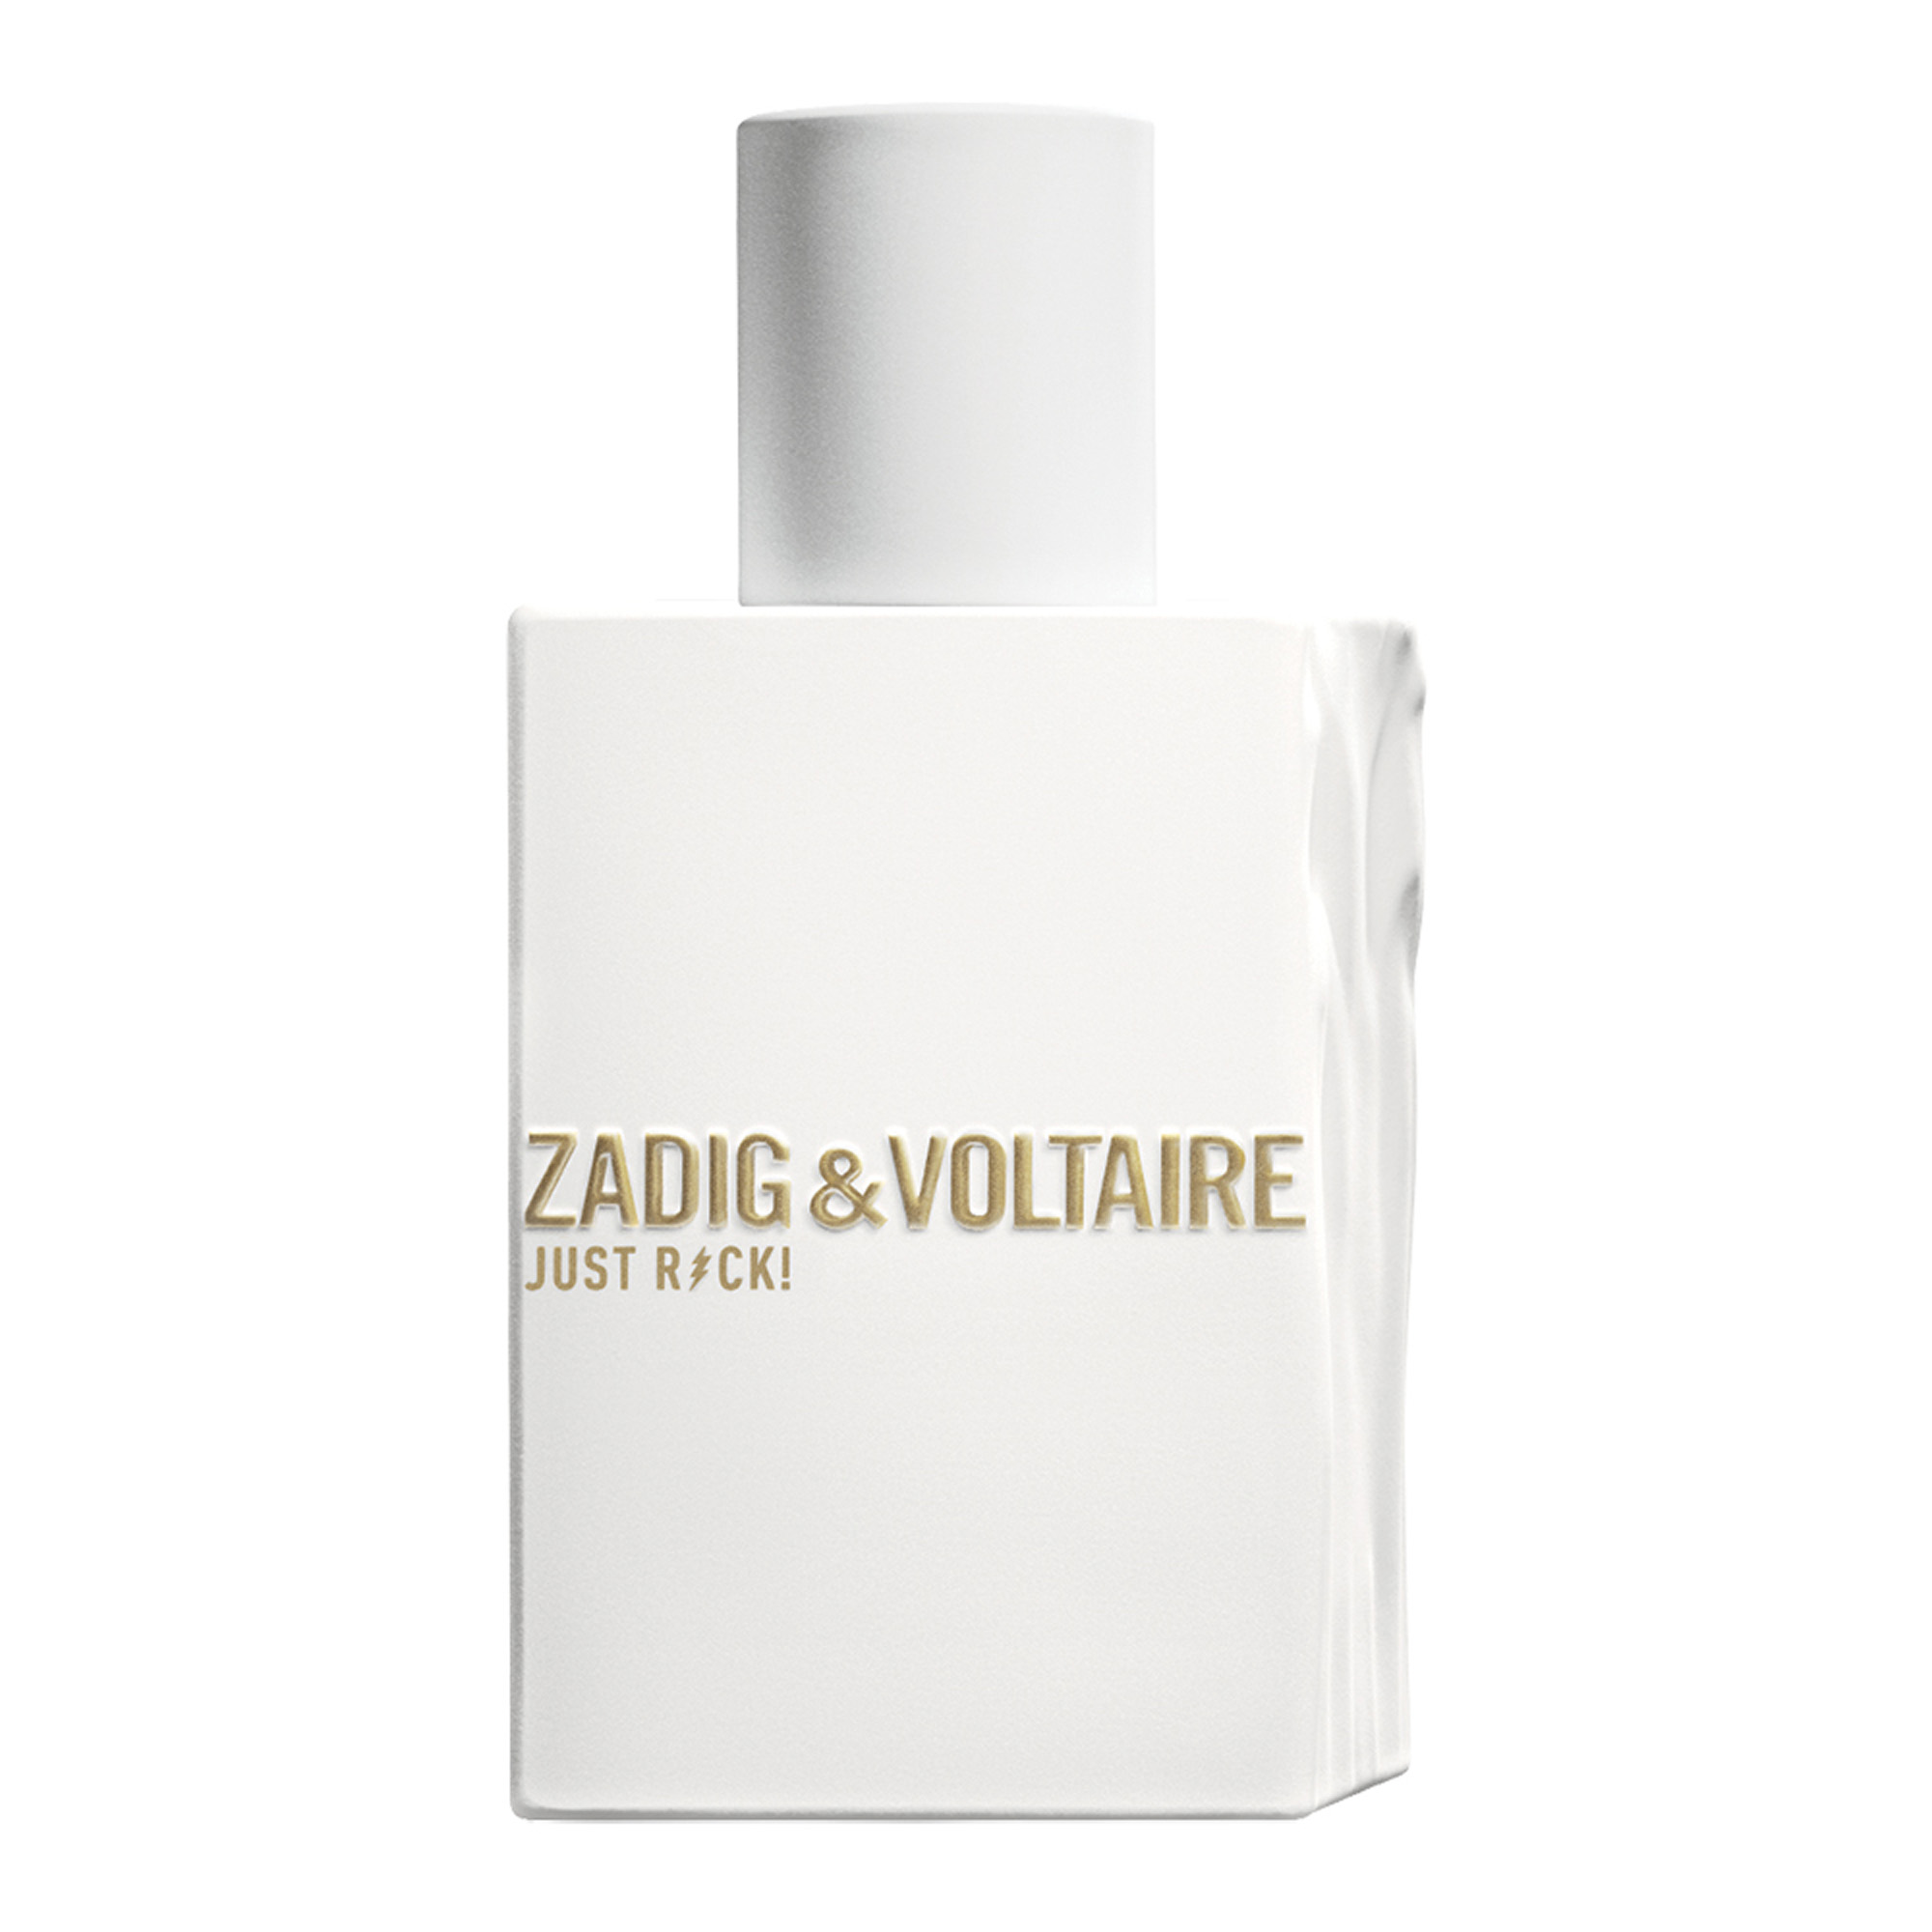 ZADIG & VOLTAIRE - Just Rock! for Her EDP - 50 ml